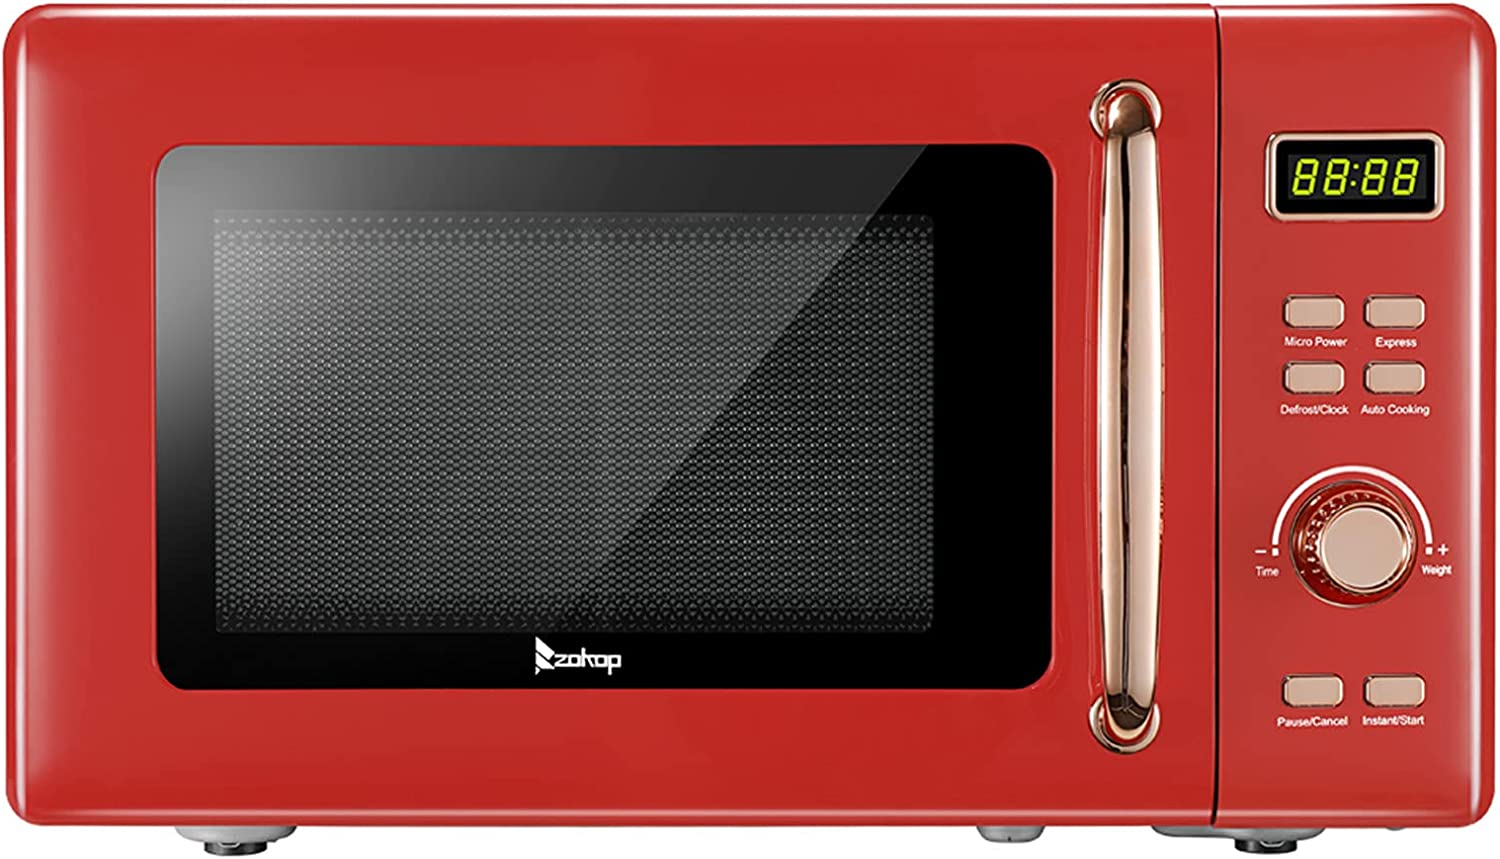 Excellent Savins gt1-ojy Red 20L 0.7cuft With Max 52% OFF Display Go Microwave Retro